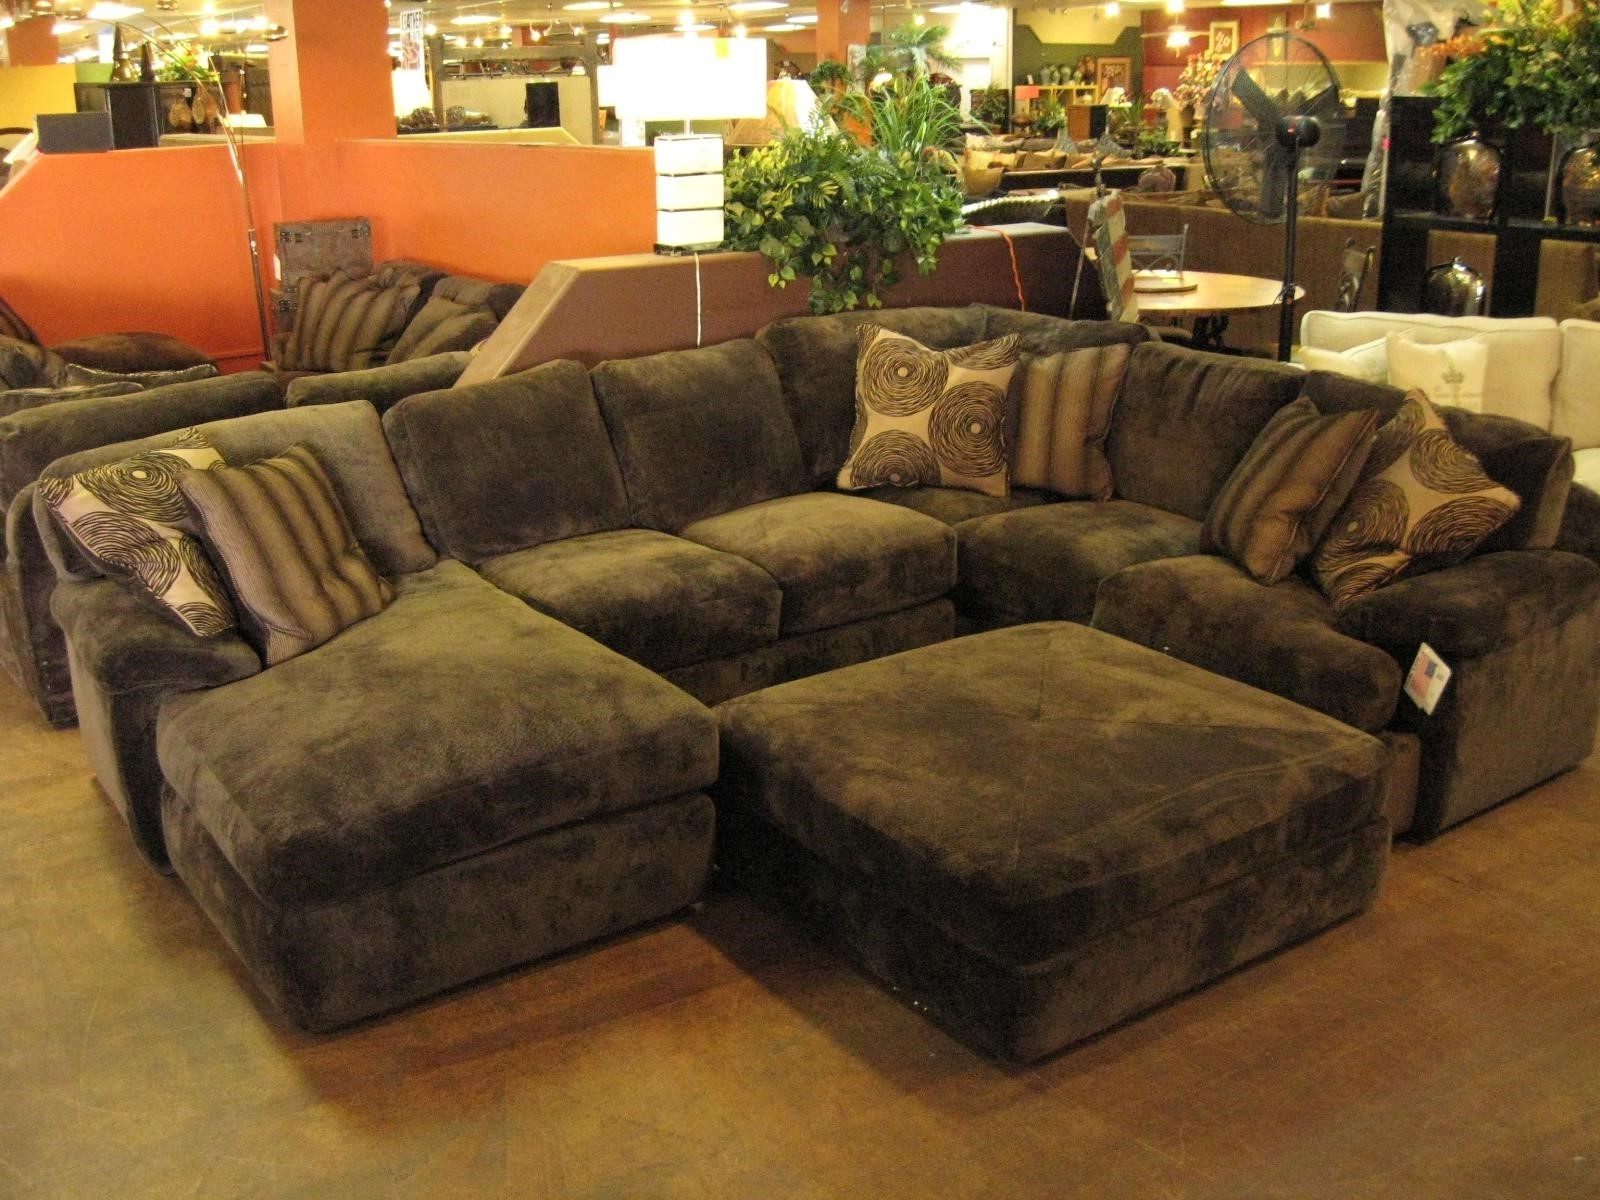 Sofas Marvelous Brown Sectional Couch Cheap For Large Sofa With Inside Most Up To Date Sectional Sofas With Chaise Lounge And Ottoman (View 16 of 20)